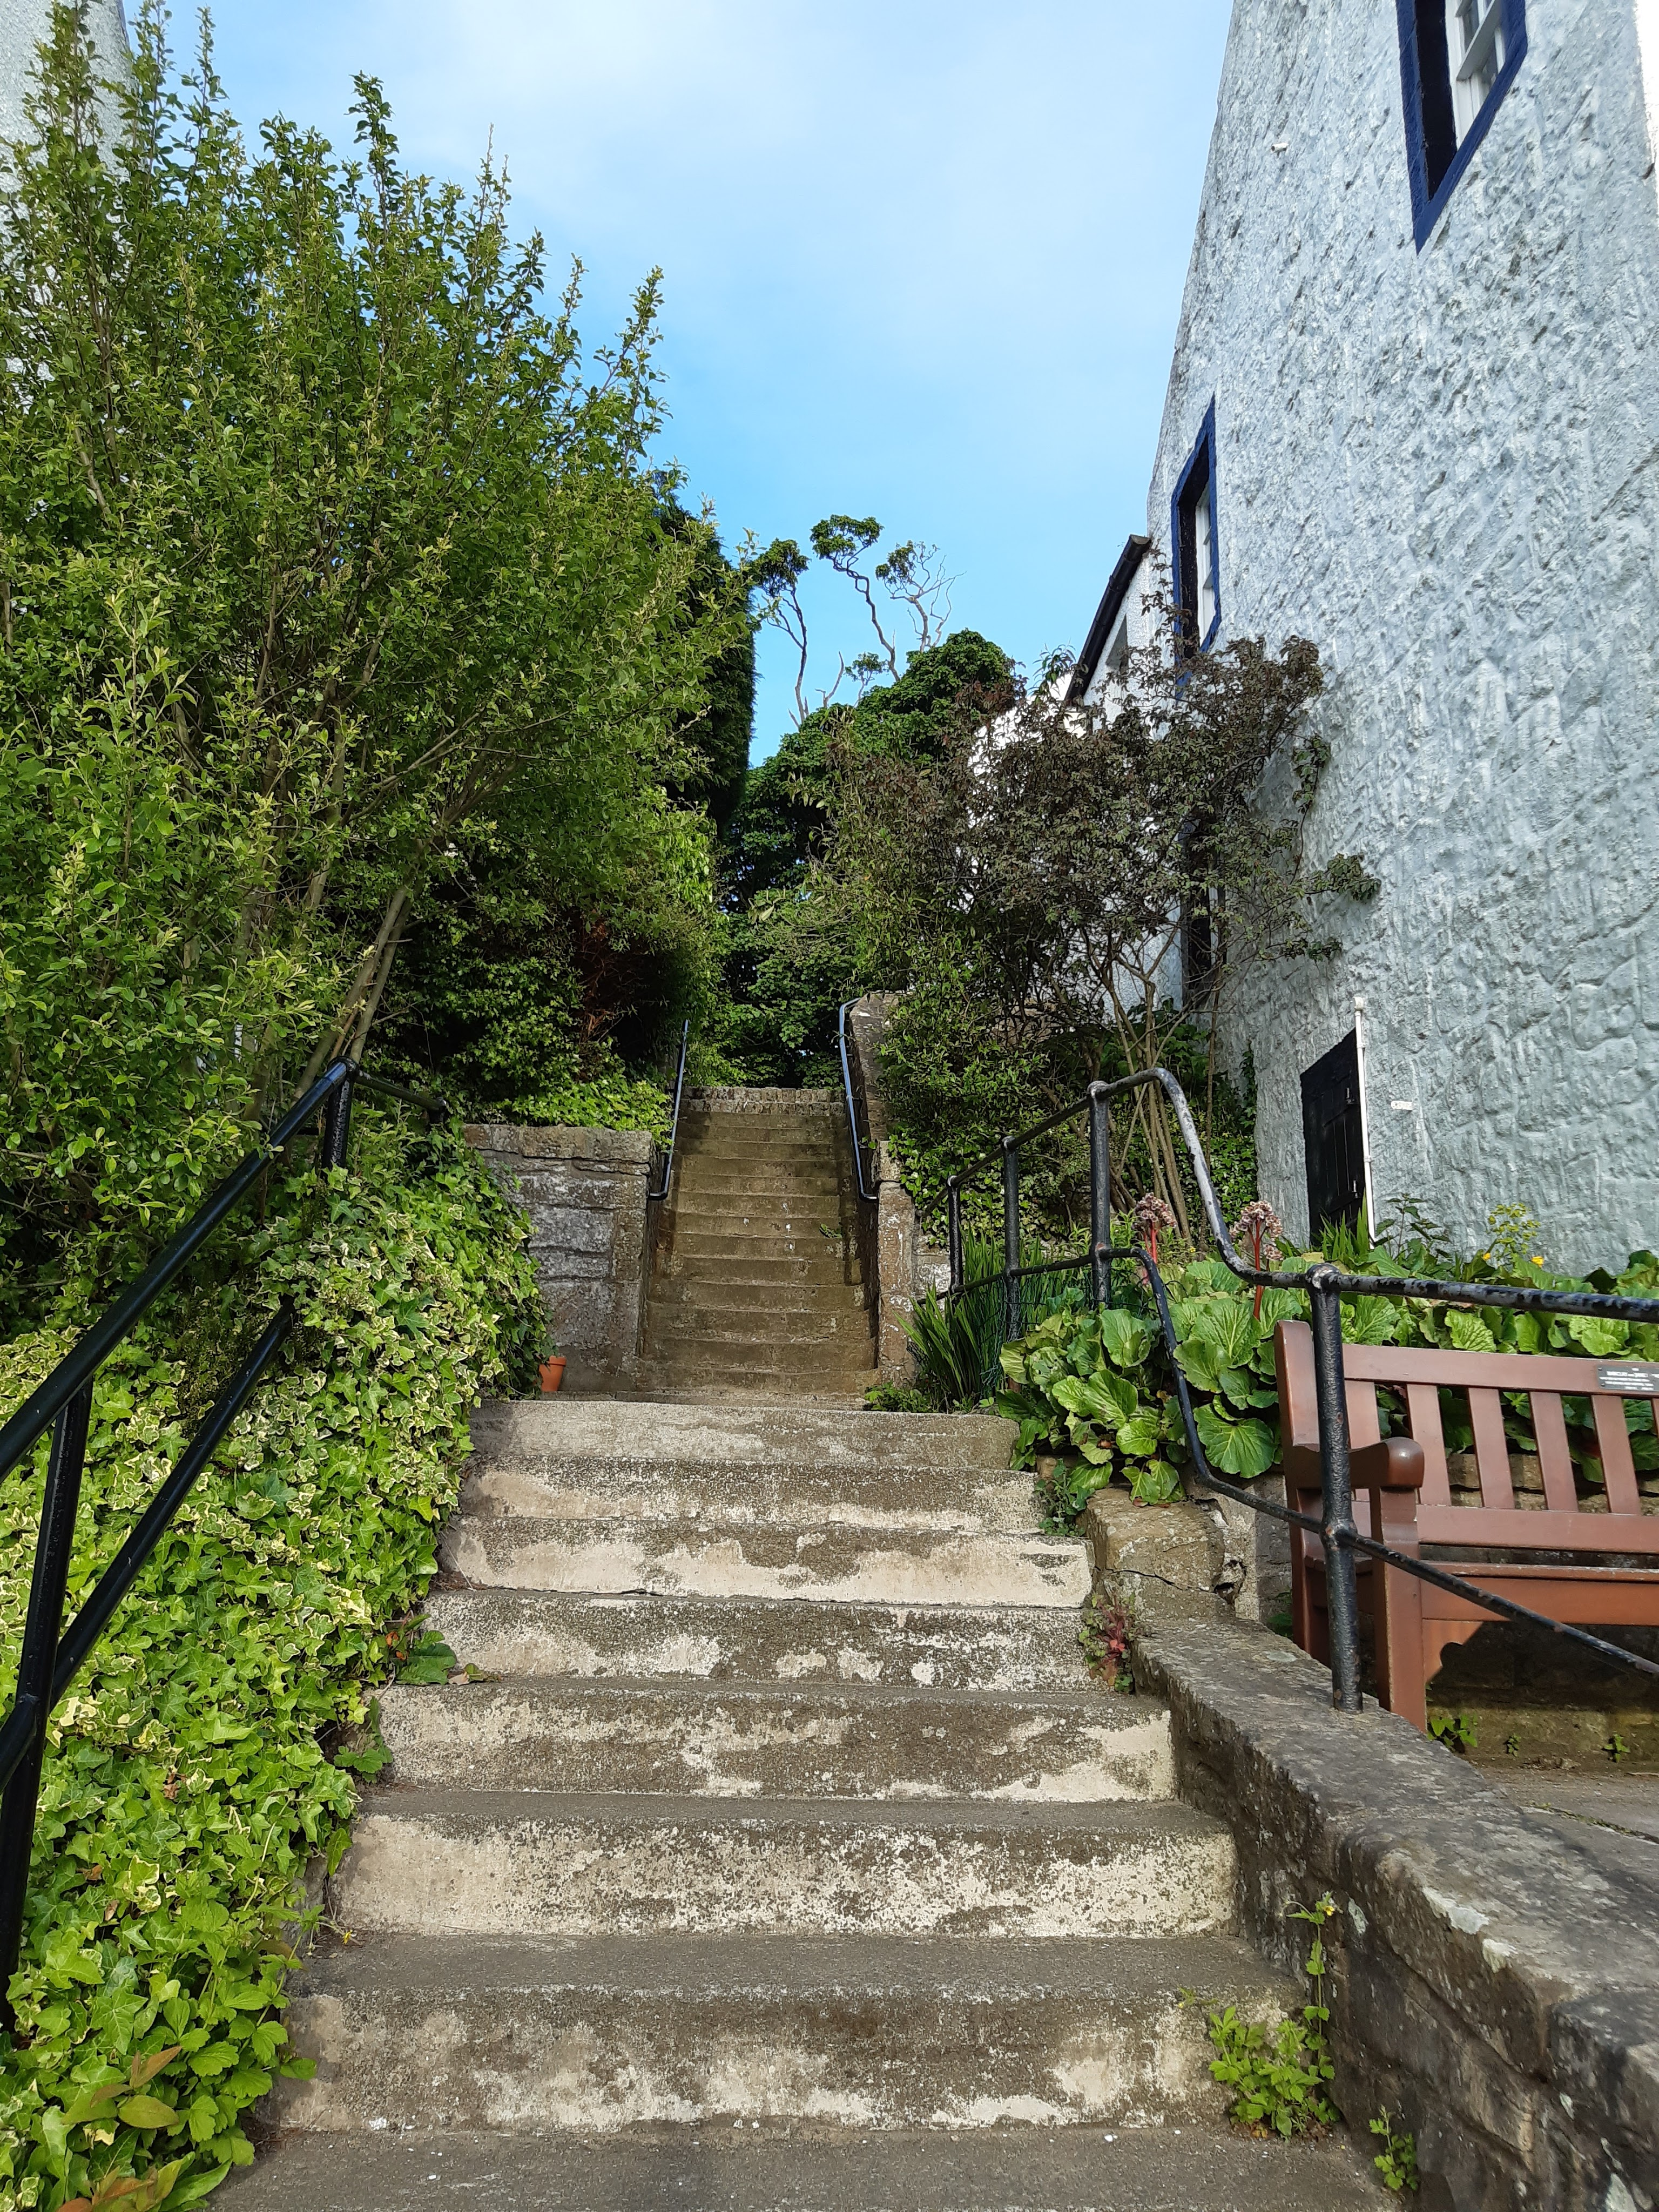 Cramond. Outside under blue sky. Looking up a narrow set of stone steps with a landing halfway to the right white painted house front with a wooden bench belowthis. cast iron banisters to the left and the right of the steps all decorated with green plants, and shrubs